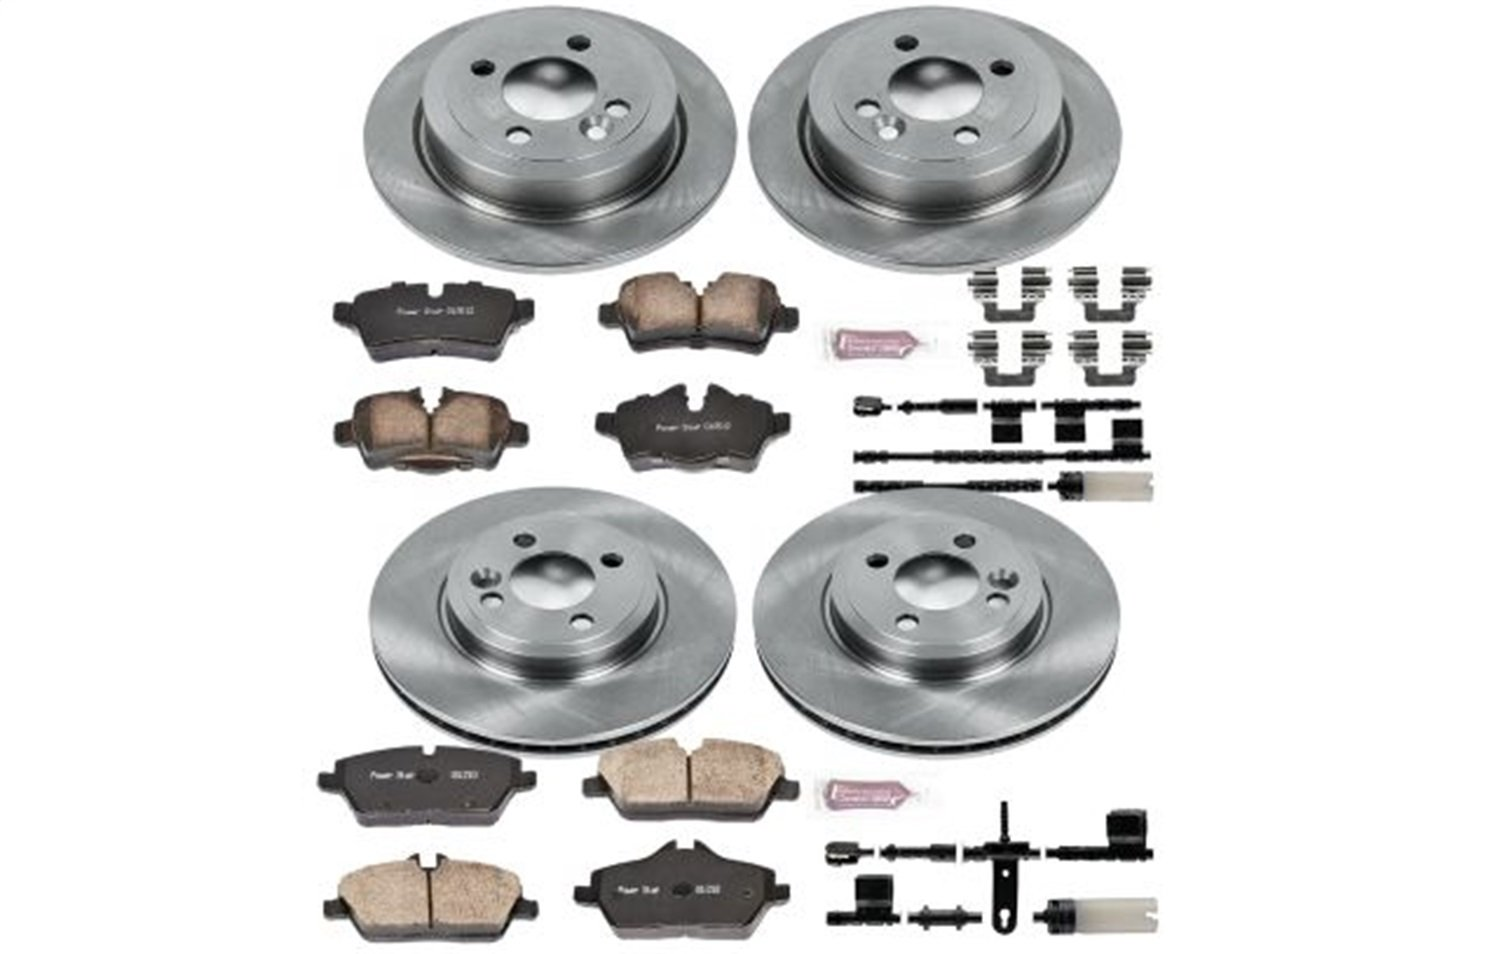 R1 Concepts CEDS10769 Eline Series Cross-Drilled Slotted Rotors And Ceramic Pads Kit Front and Rear